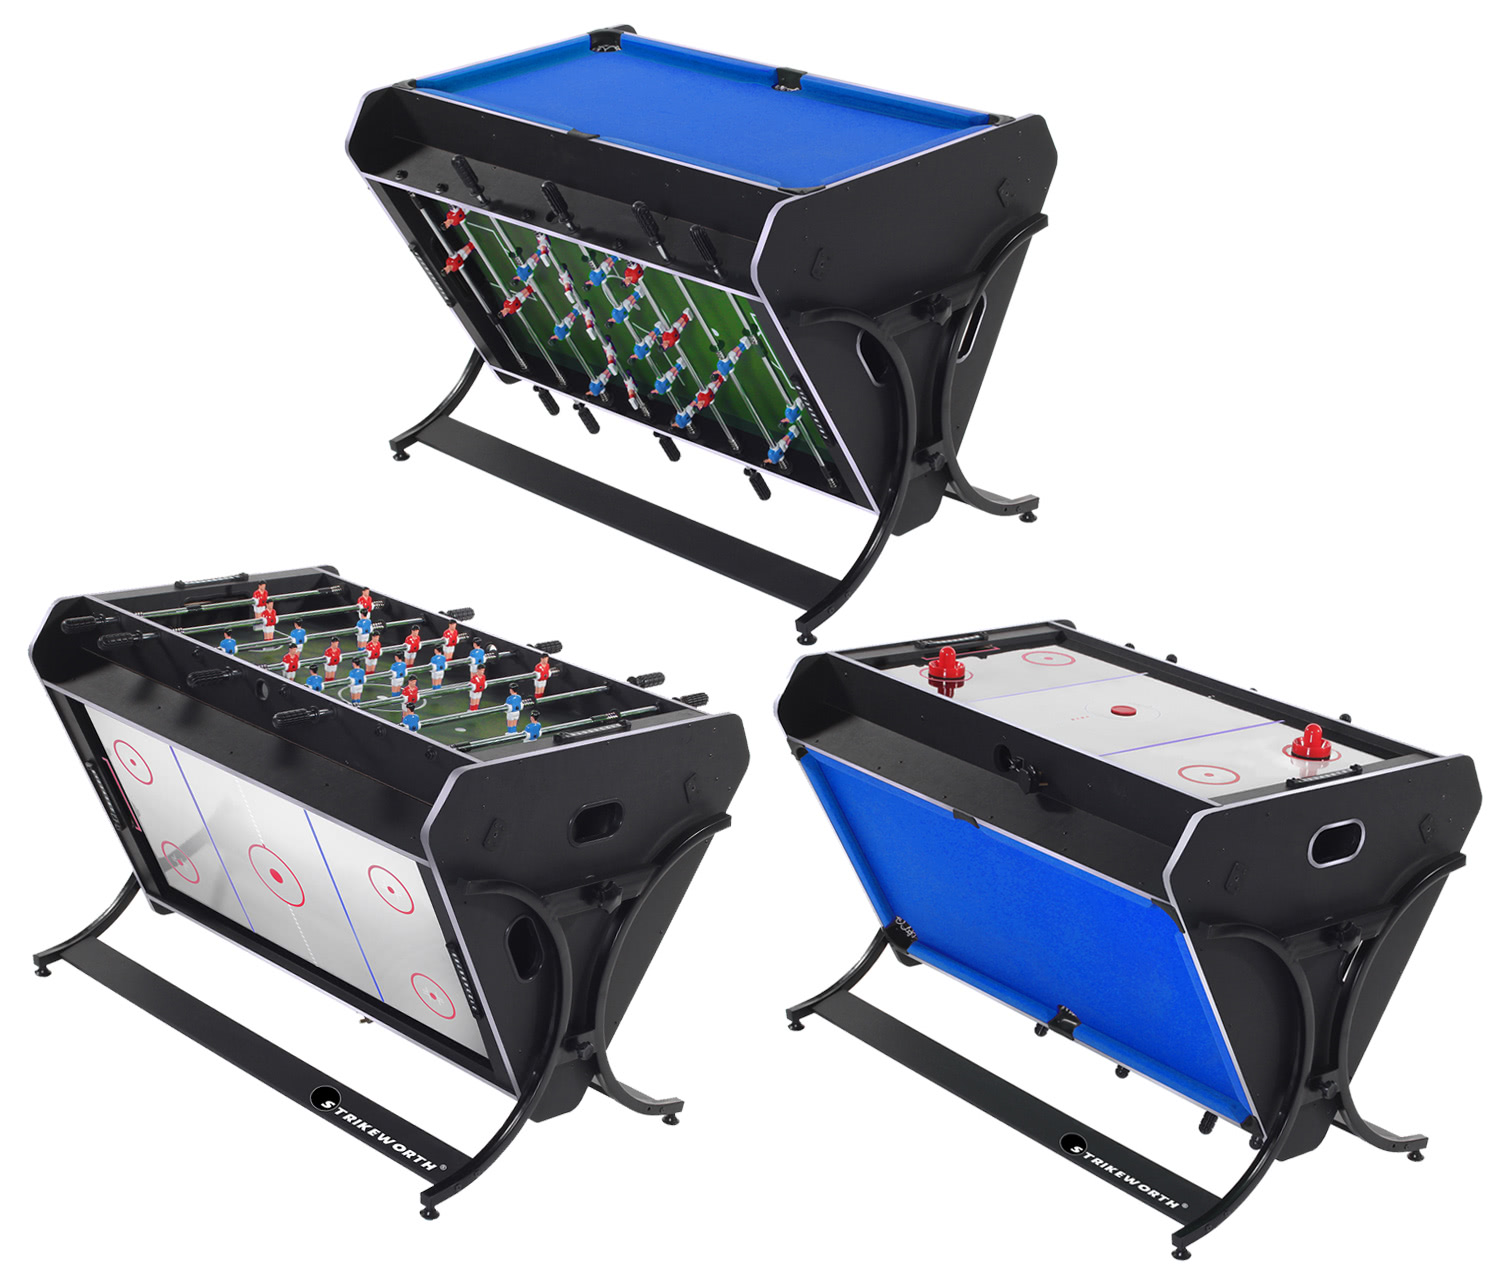 Pool Game Table. Strikeworth Trisport 4 Foot Multi Games Table Pool Game